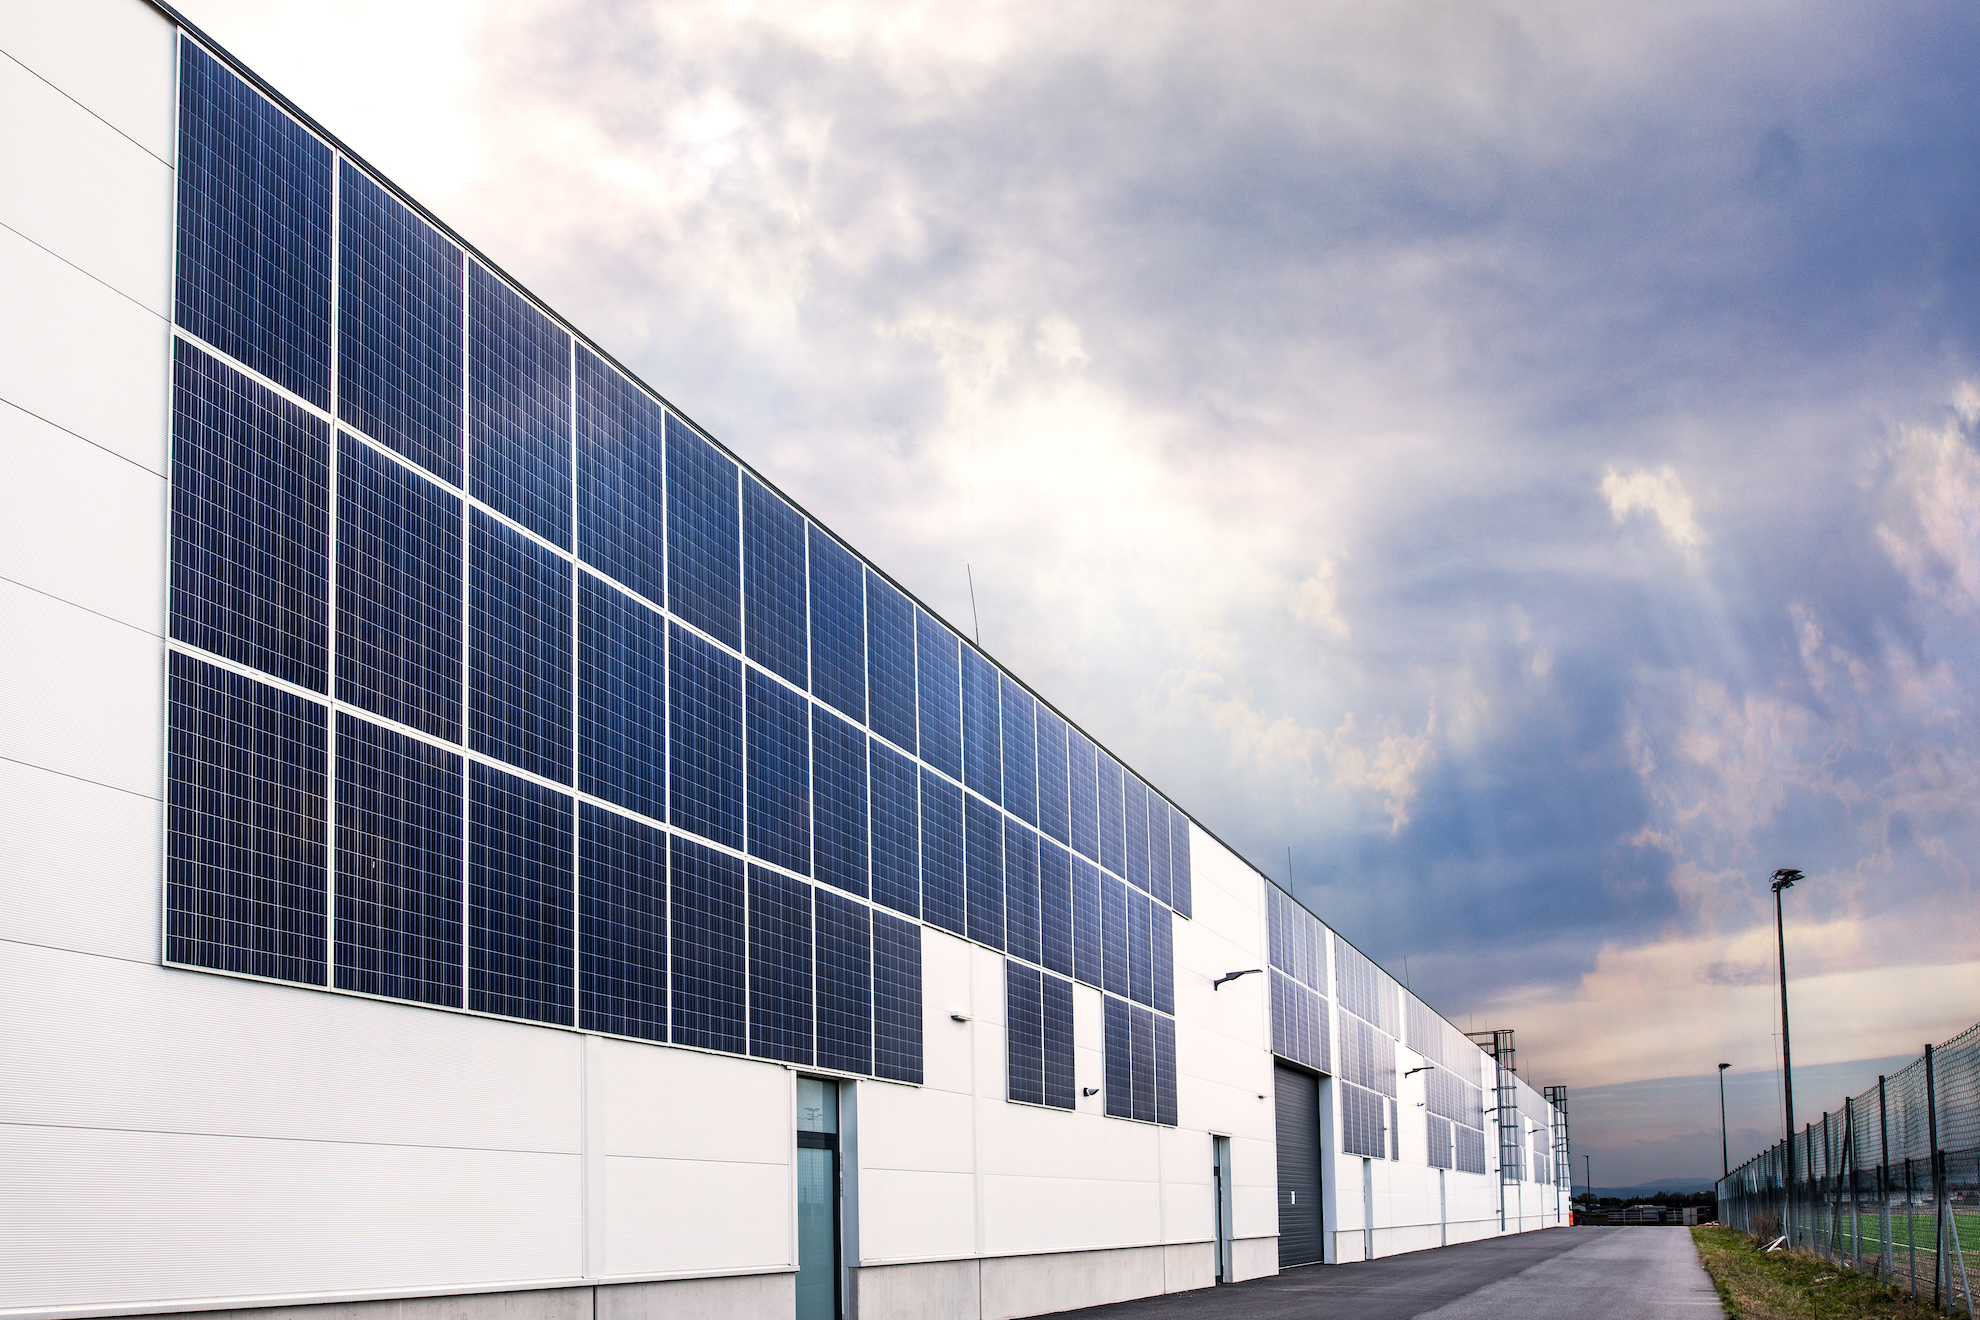 About us - DAS Energy GmbH, with its headquarter in Wiener Neustadt (Austria), is a research & development center and a production facility with a capacity of 55 MW per year. As a Green Tech company, our aim is to set new standards as a worldwide pioneer in patented photovoltaic technology: glass-free, frameless, flexible, ultra- lightweight, easy to mount, suitable for extreme weather conditions, reliable and long-lasting.